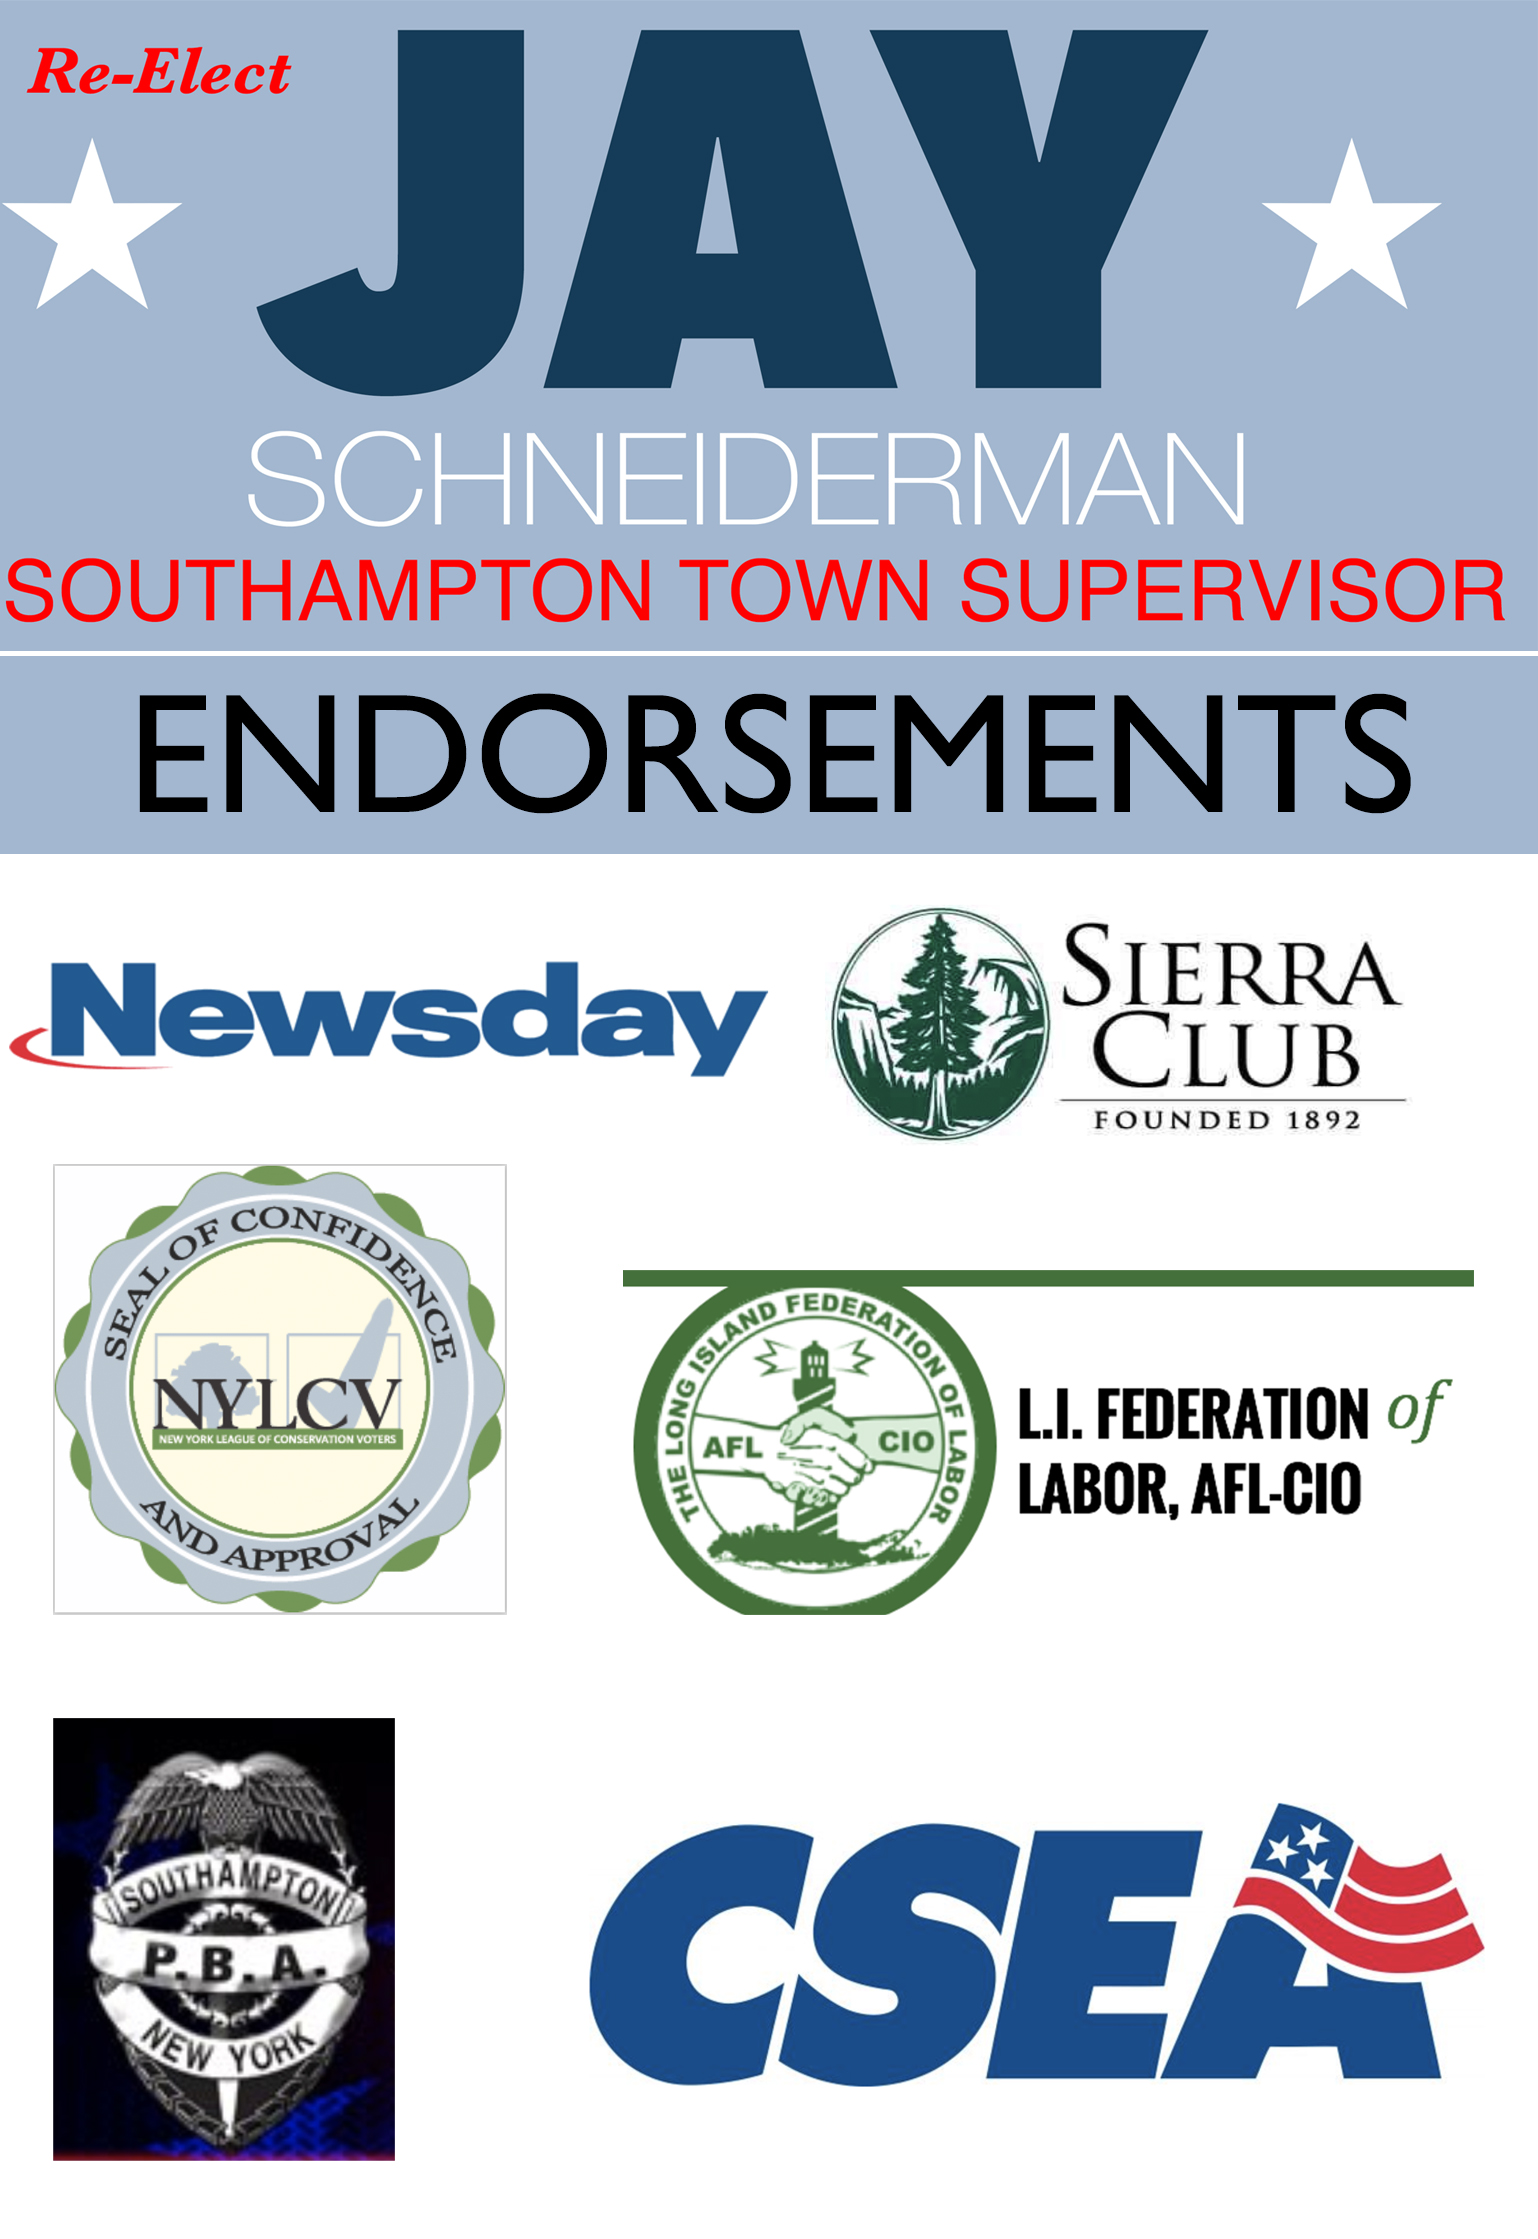 Jay Schneiderman - 2019 endorsements: Newsday, Sierra Club, AFL/CIO, NYCLV, Southampton PBC, CSEA